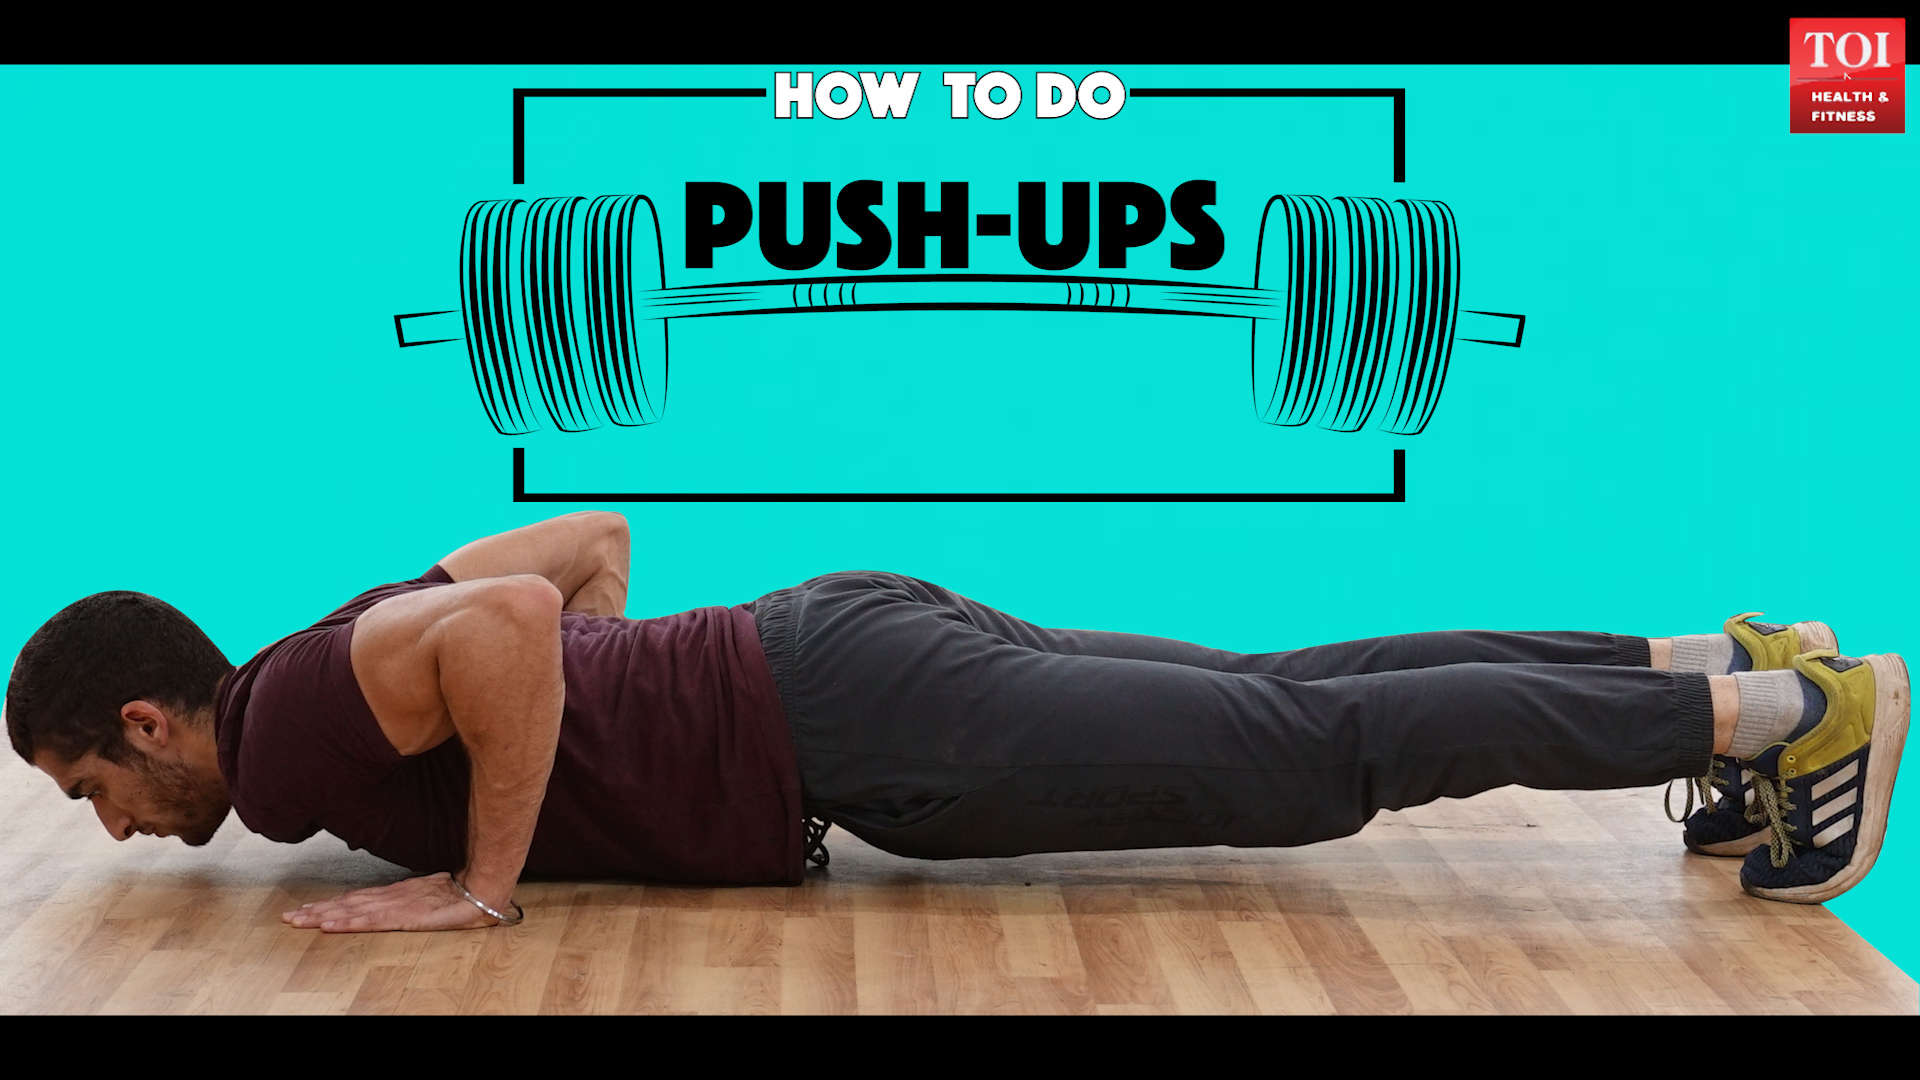 How to do push-ups